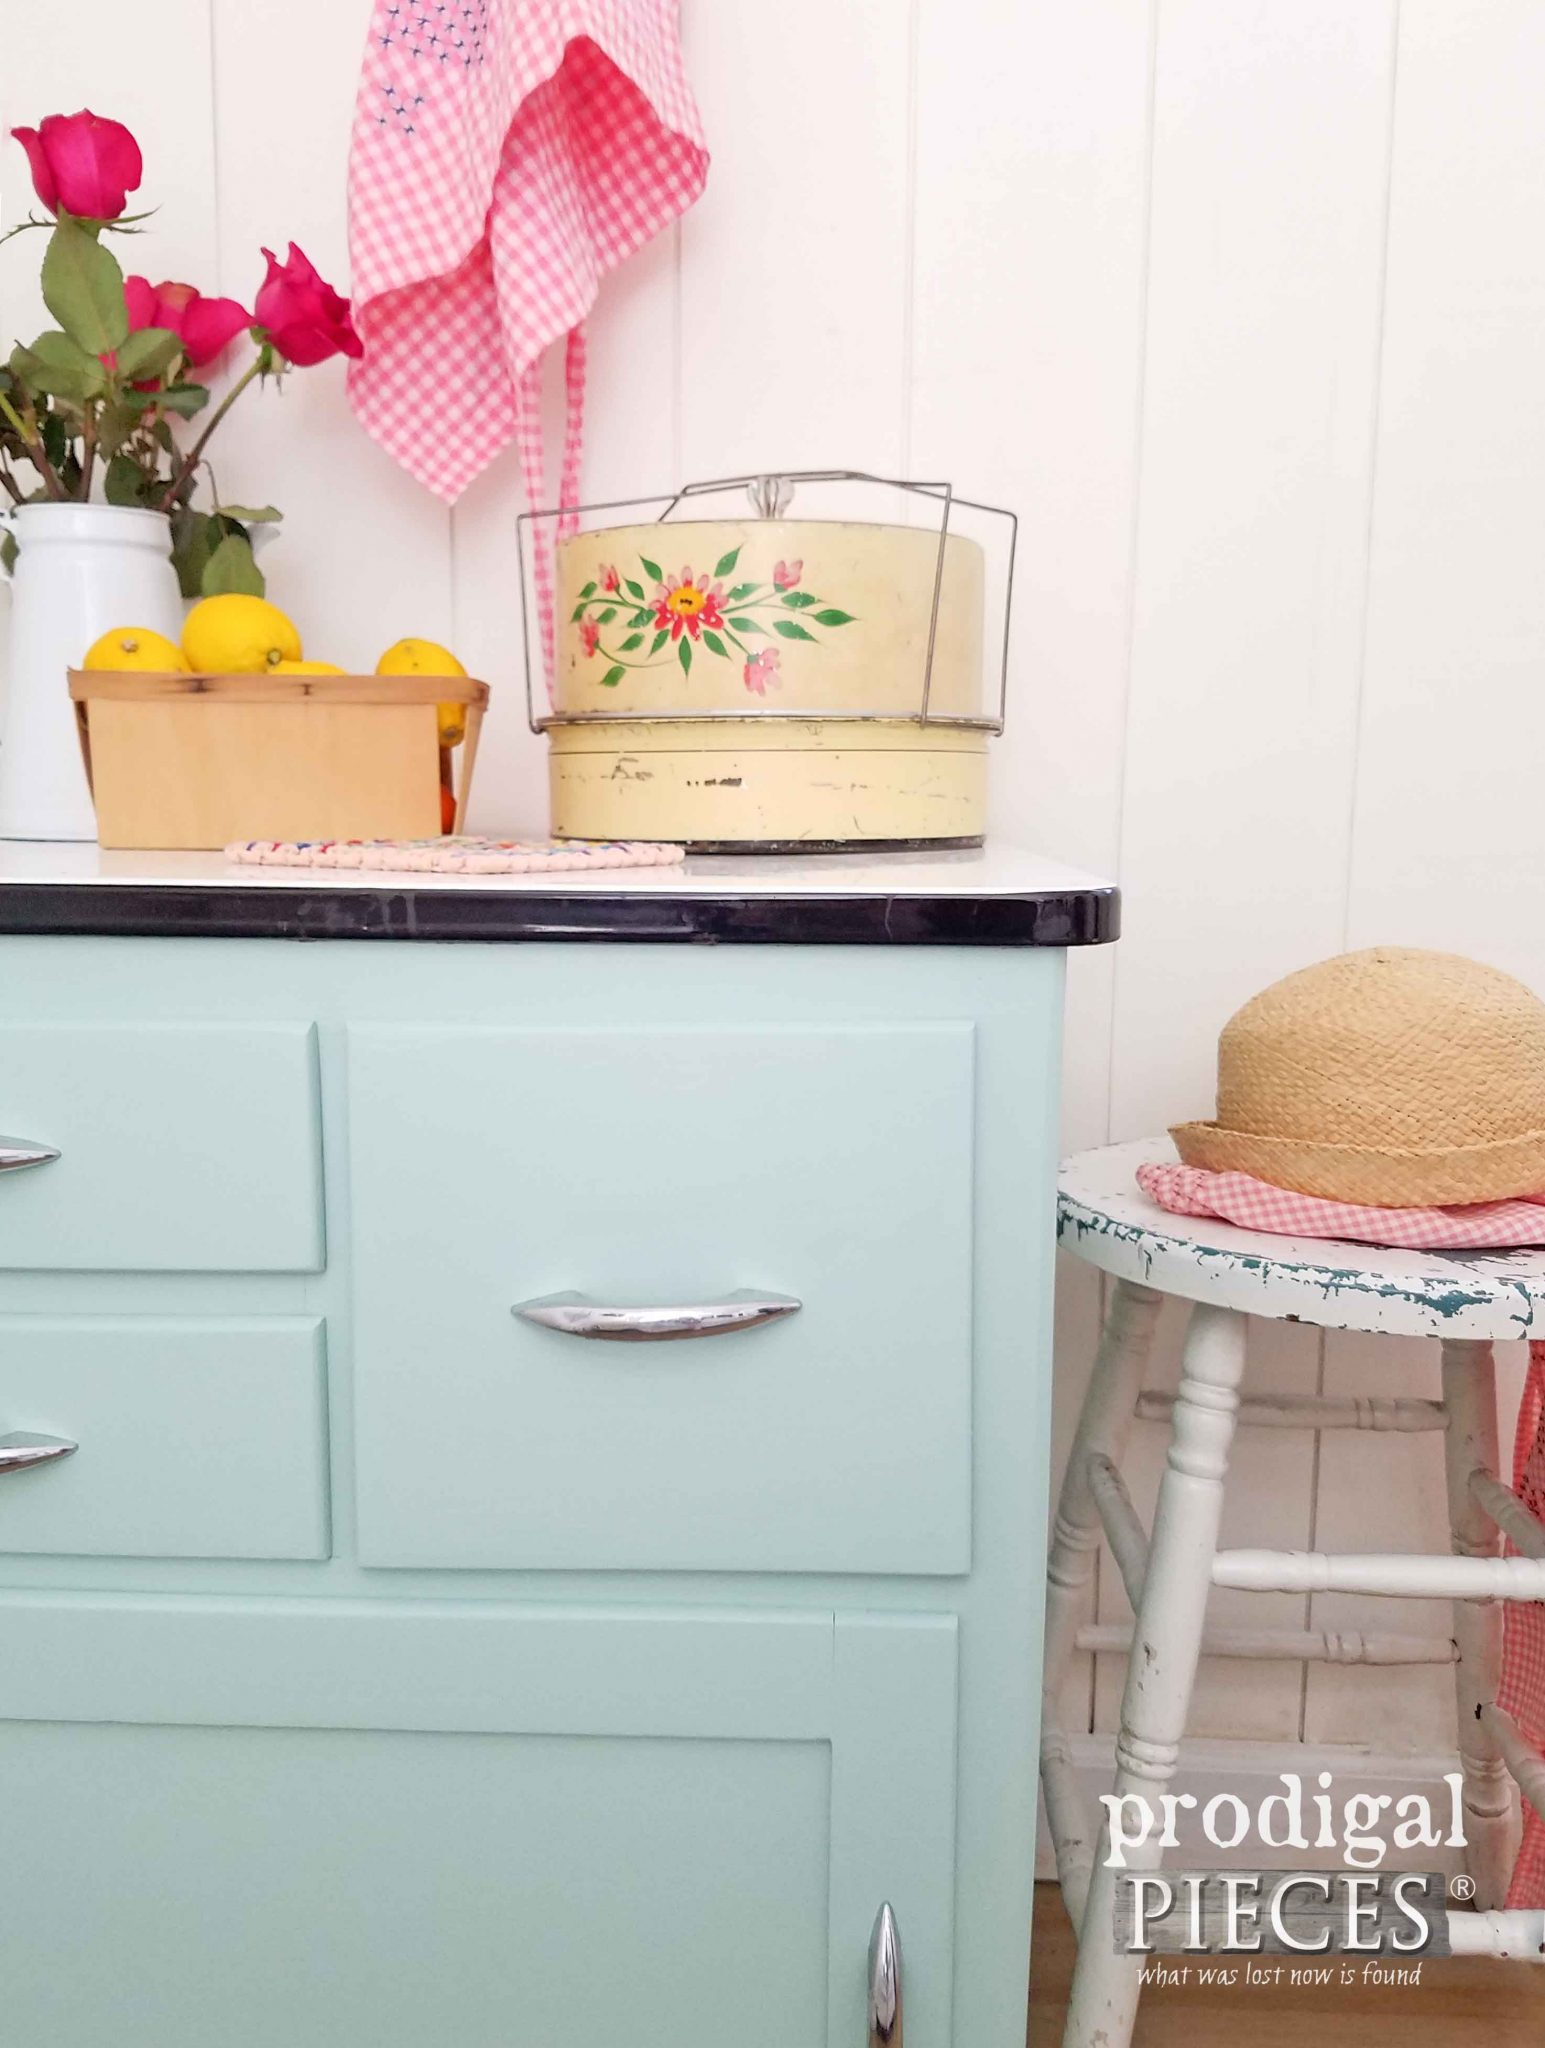 Cottage Style Aqua Blue Enamel Cabinet Makeover by Prodigal Pieces | prodigalpieces.com